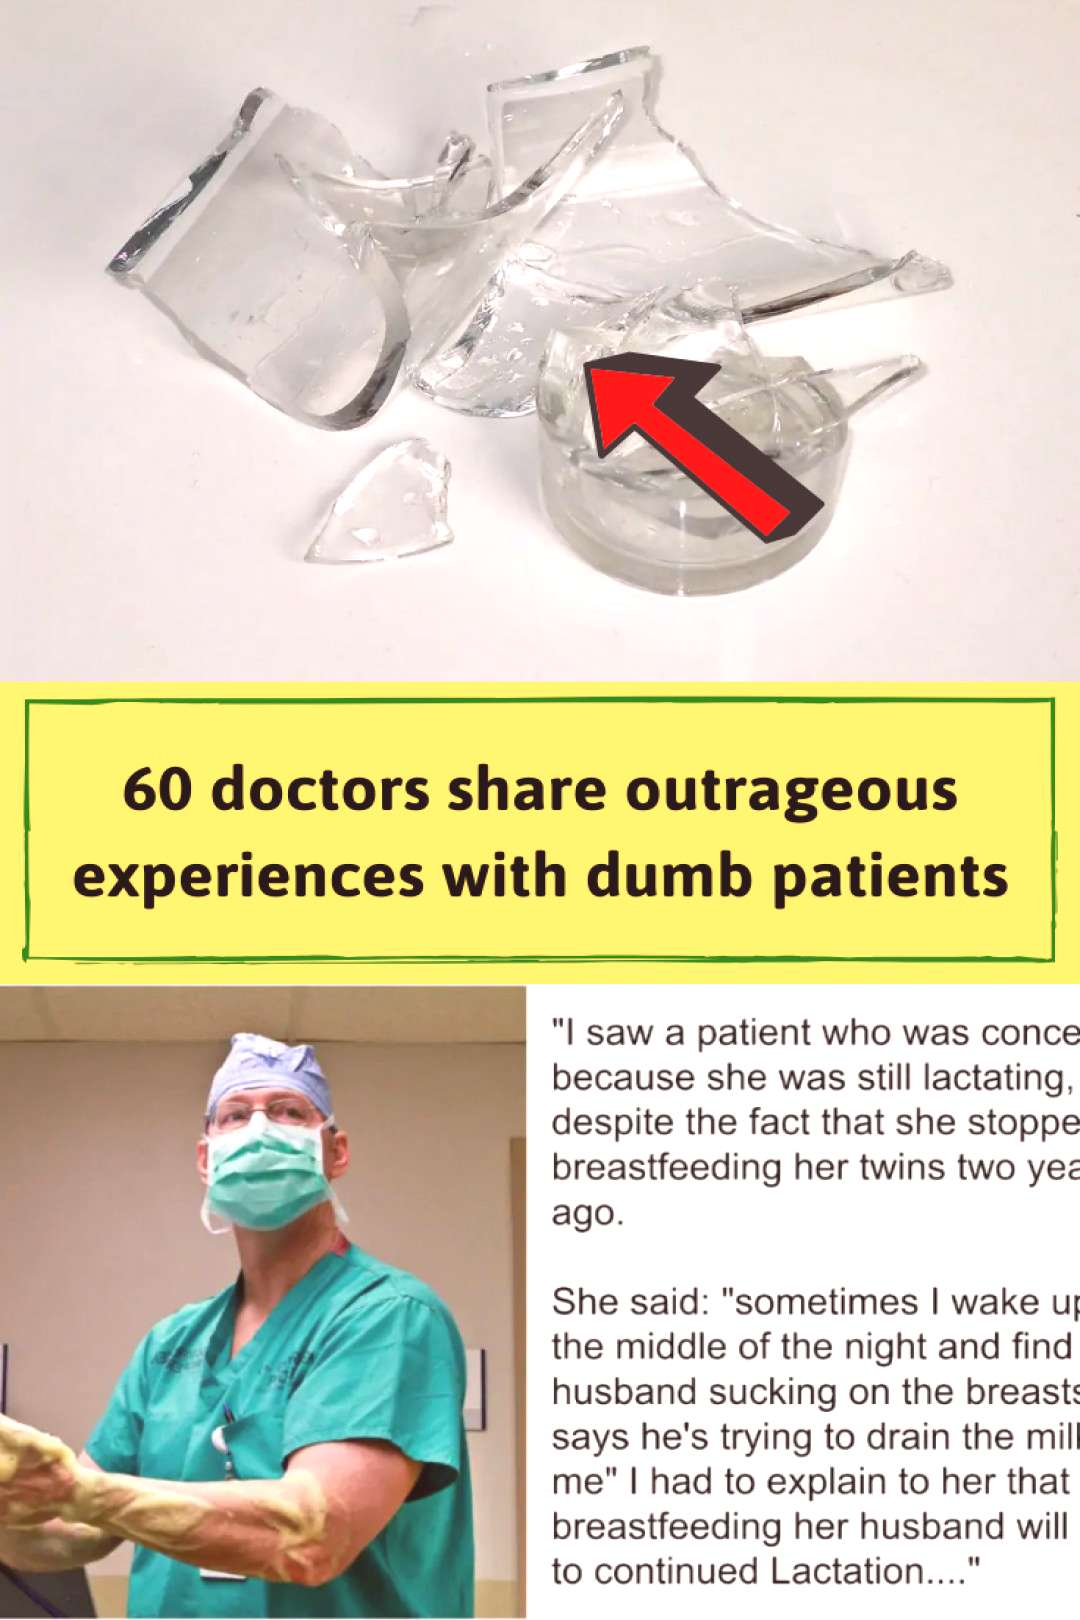 60 doctors share outrageous experiences with dumb patients